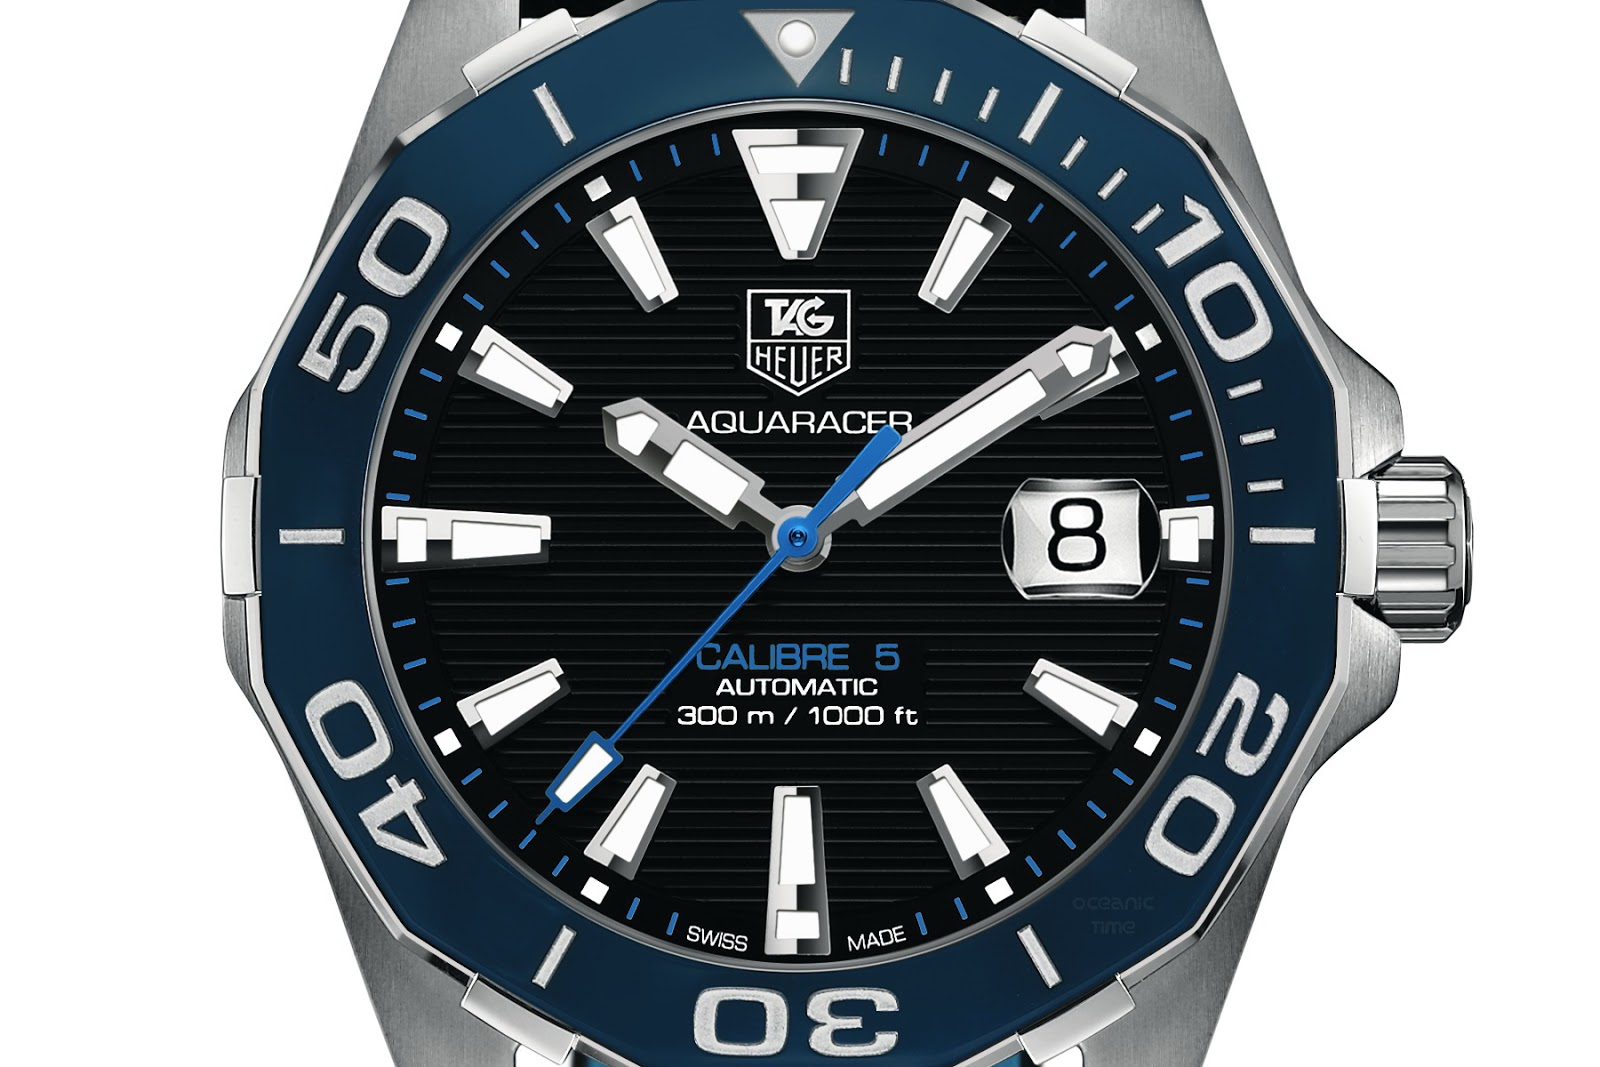 41ddf658a6d Tag Heuer 300m Aquaracer - cheap watches mgc-gas.com